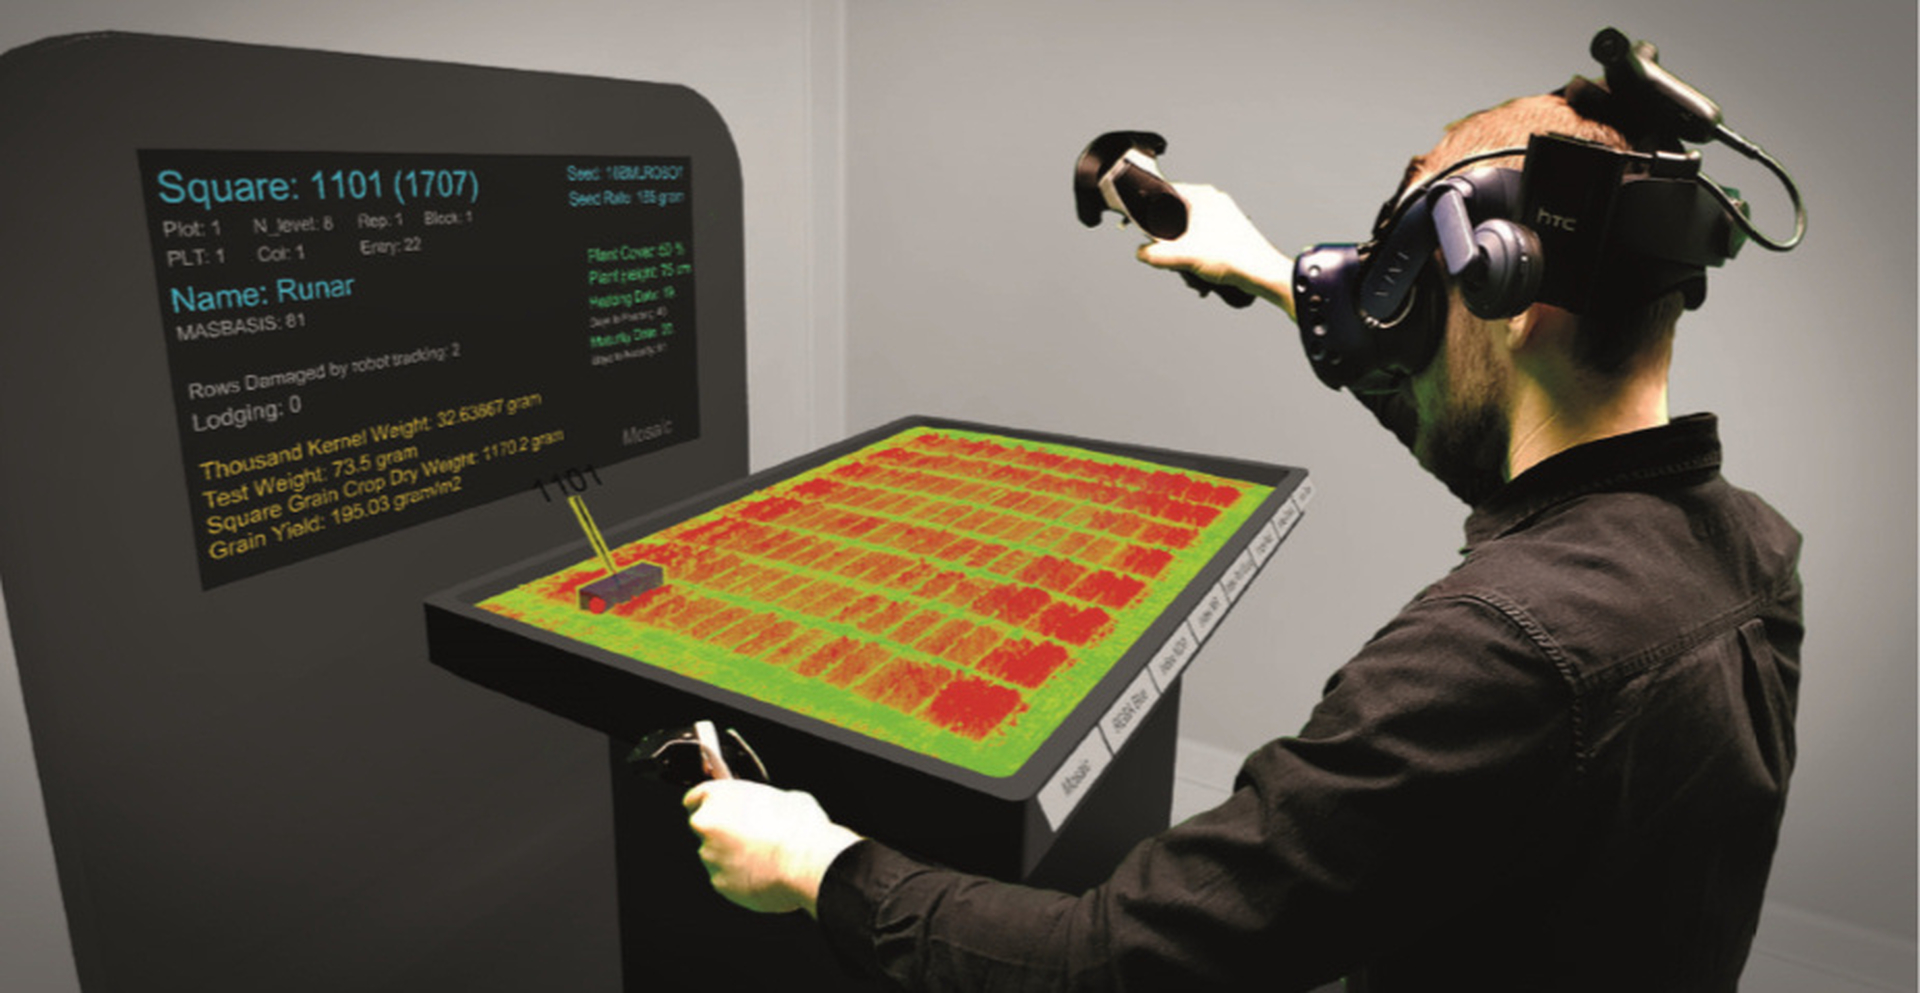 Plant phenotyping in virtual reality using the prototype developed in the vPheno project. Photo: Pål S. Vindfallet